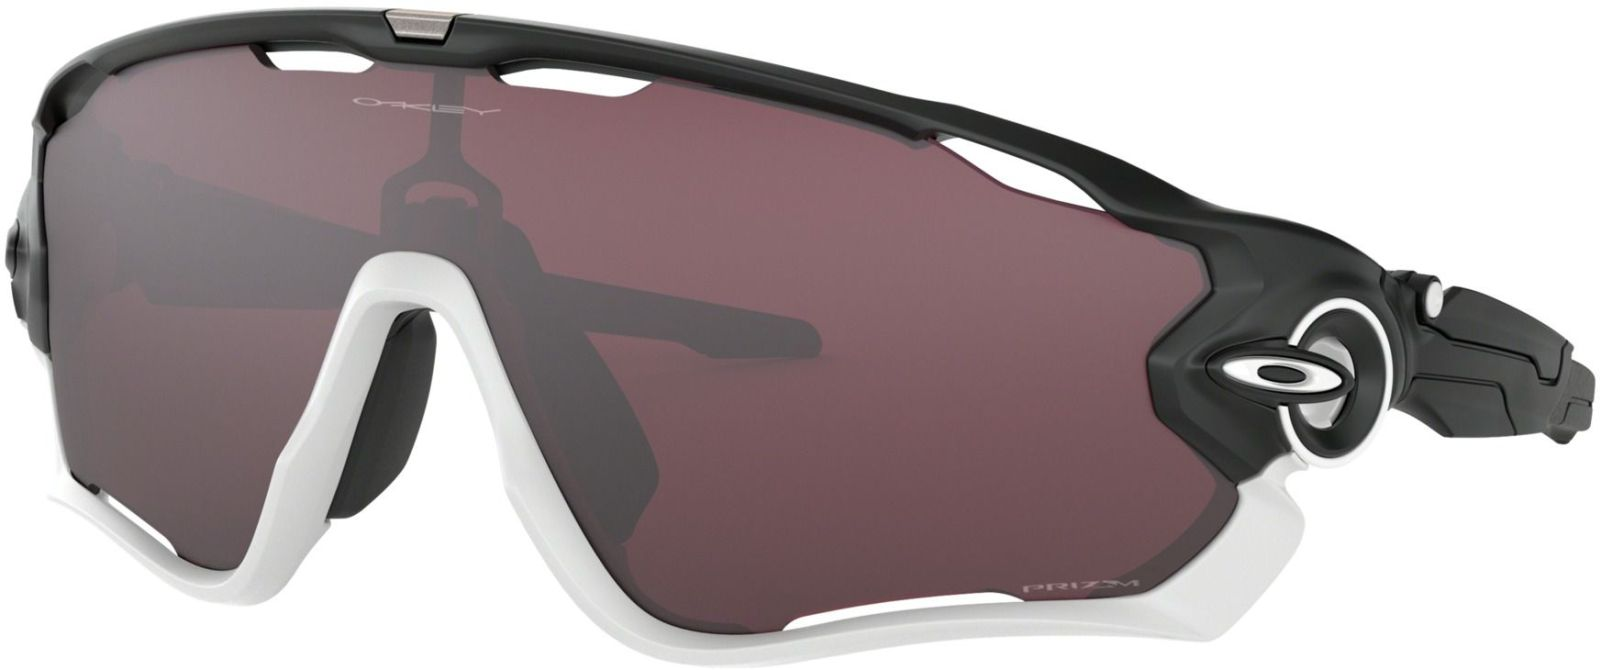 Oakley Jawbreaker - Matte Black / PRIZM Red Black uni